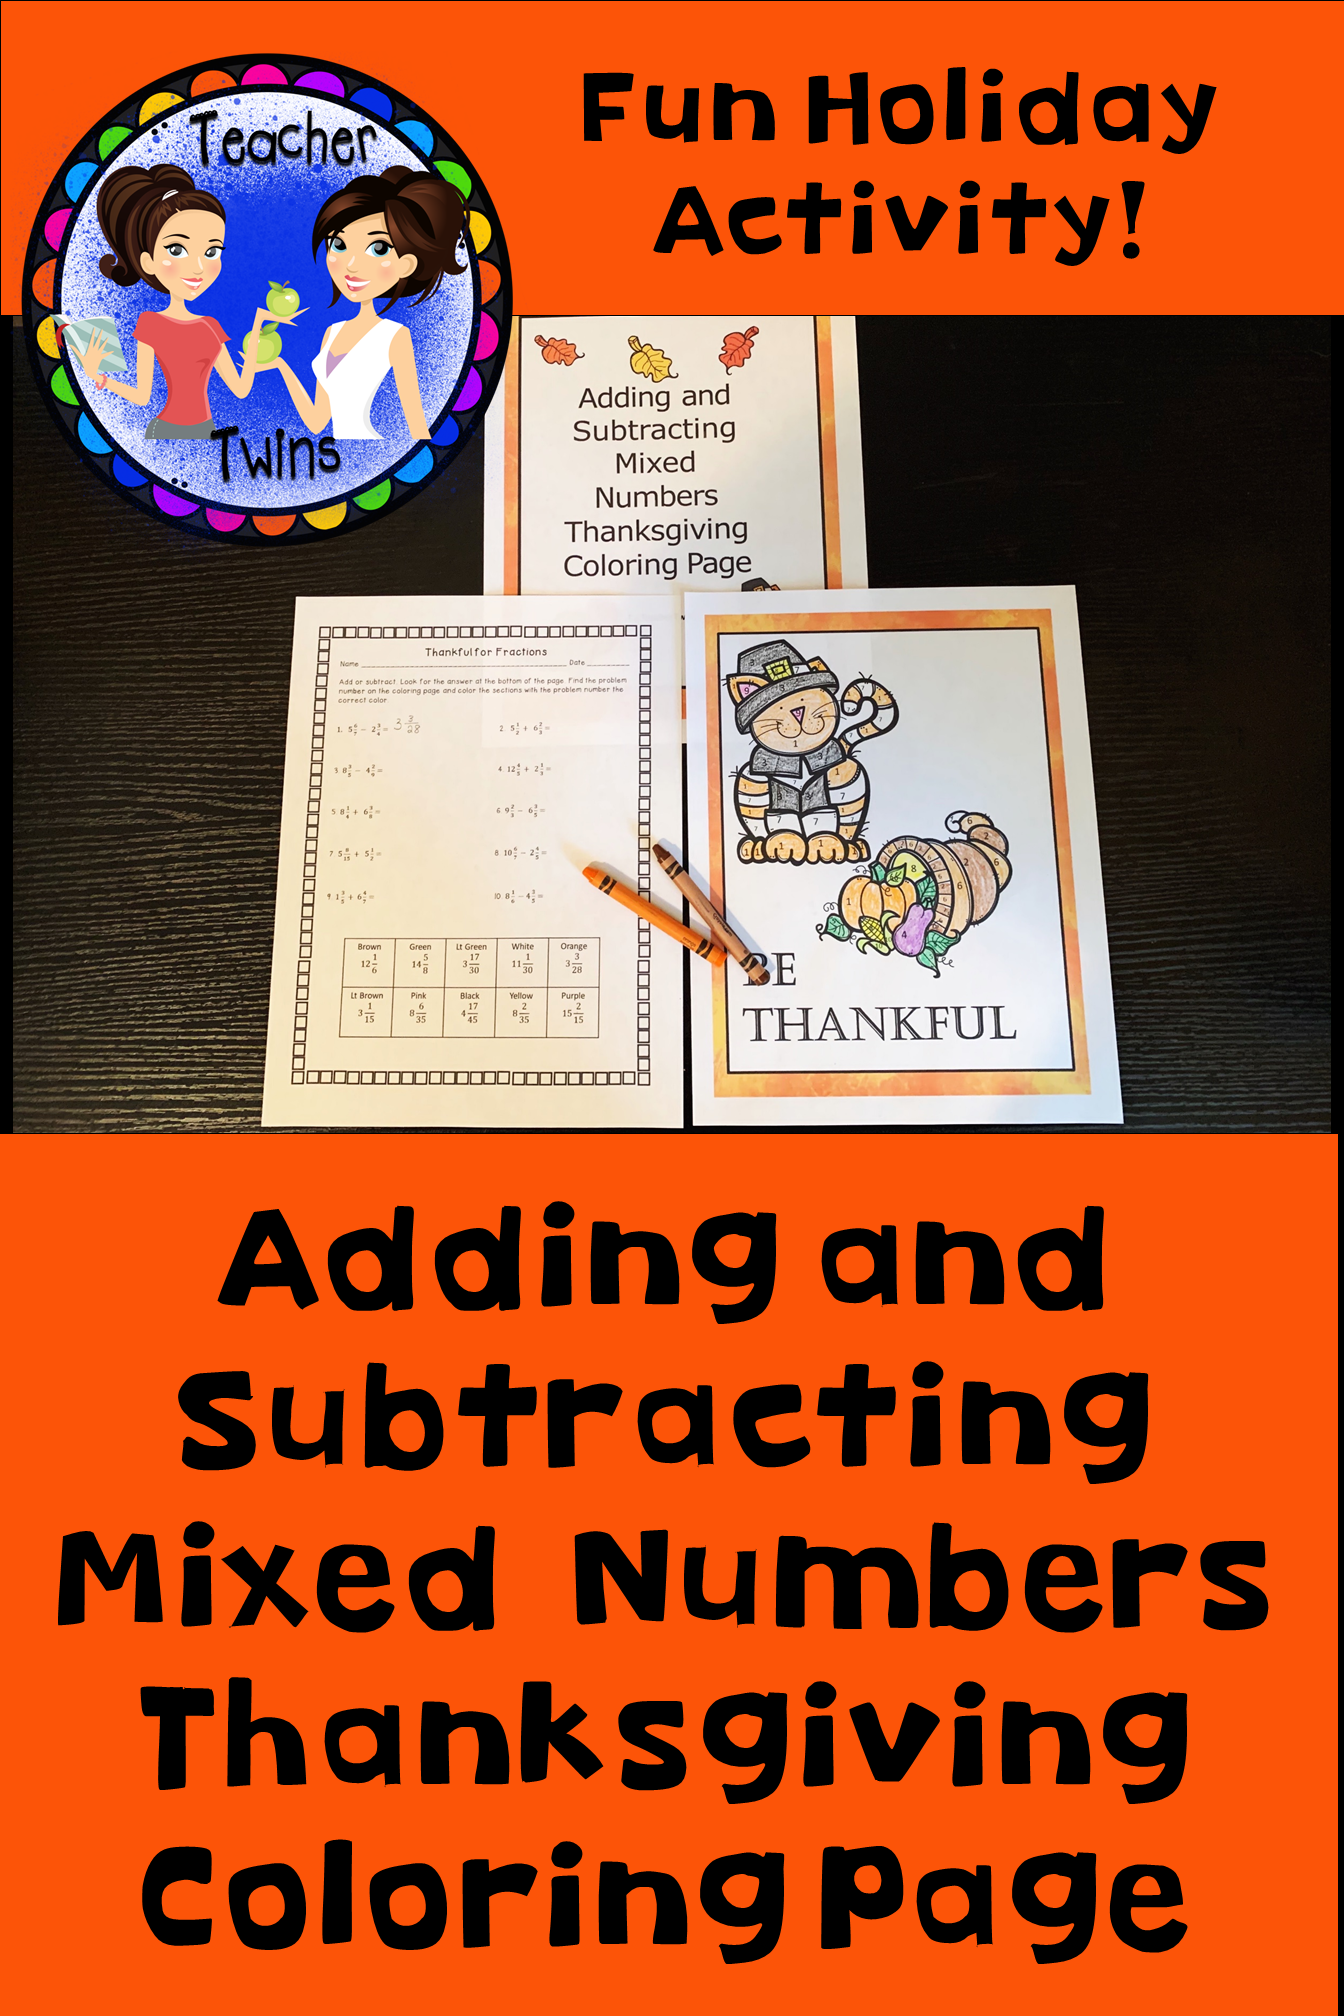 Adding And Subtracting Mixed Numbers Thanksgiving Coloring